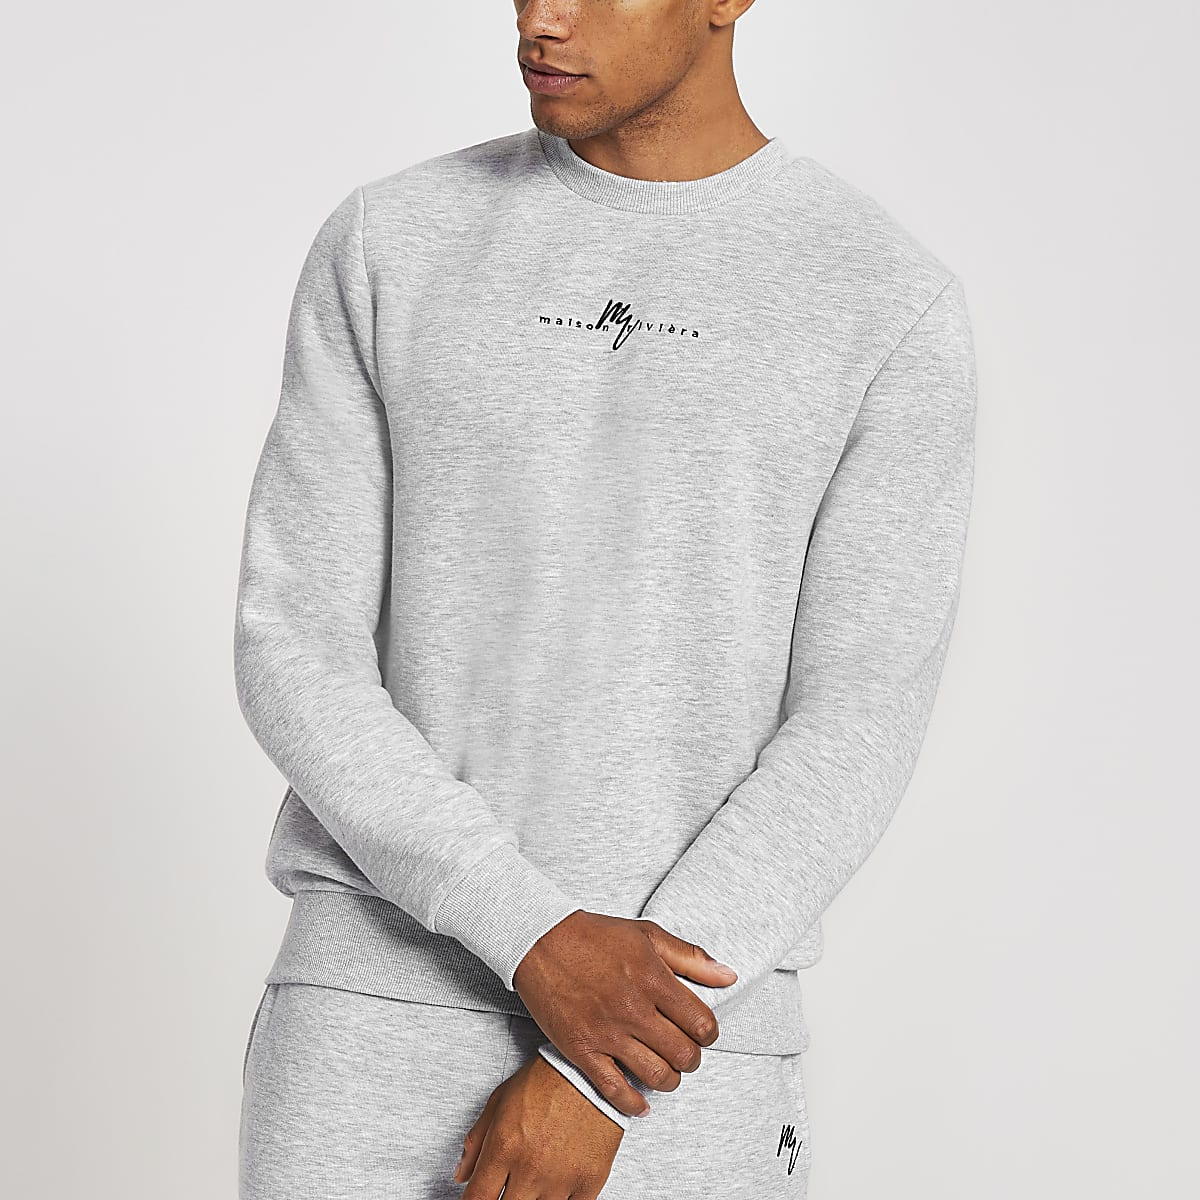 Maison Riviera grey slim fit sweatshirt